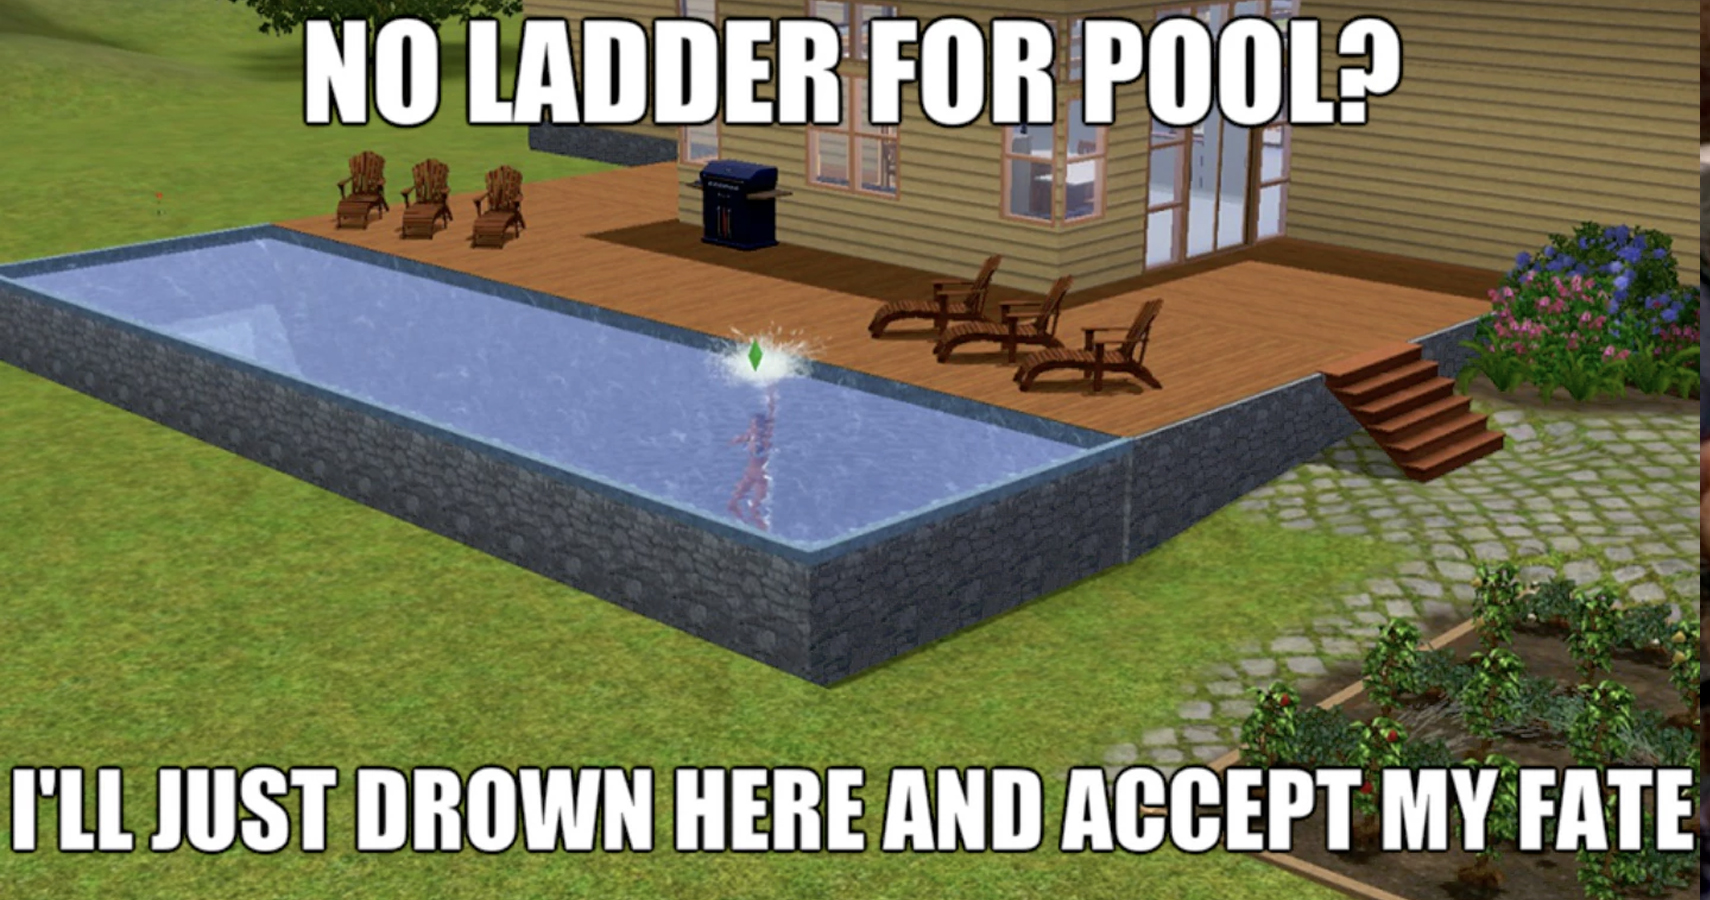 The Sims Memes That Are Too Hilarious For Words